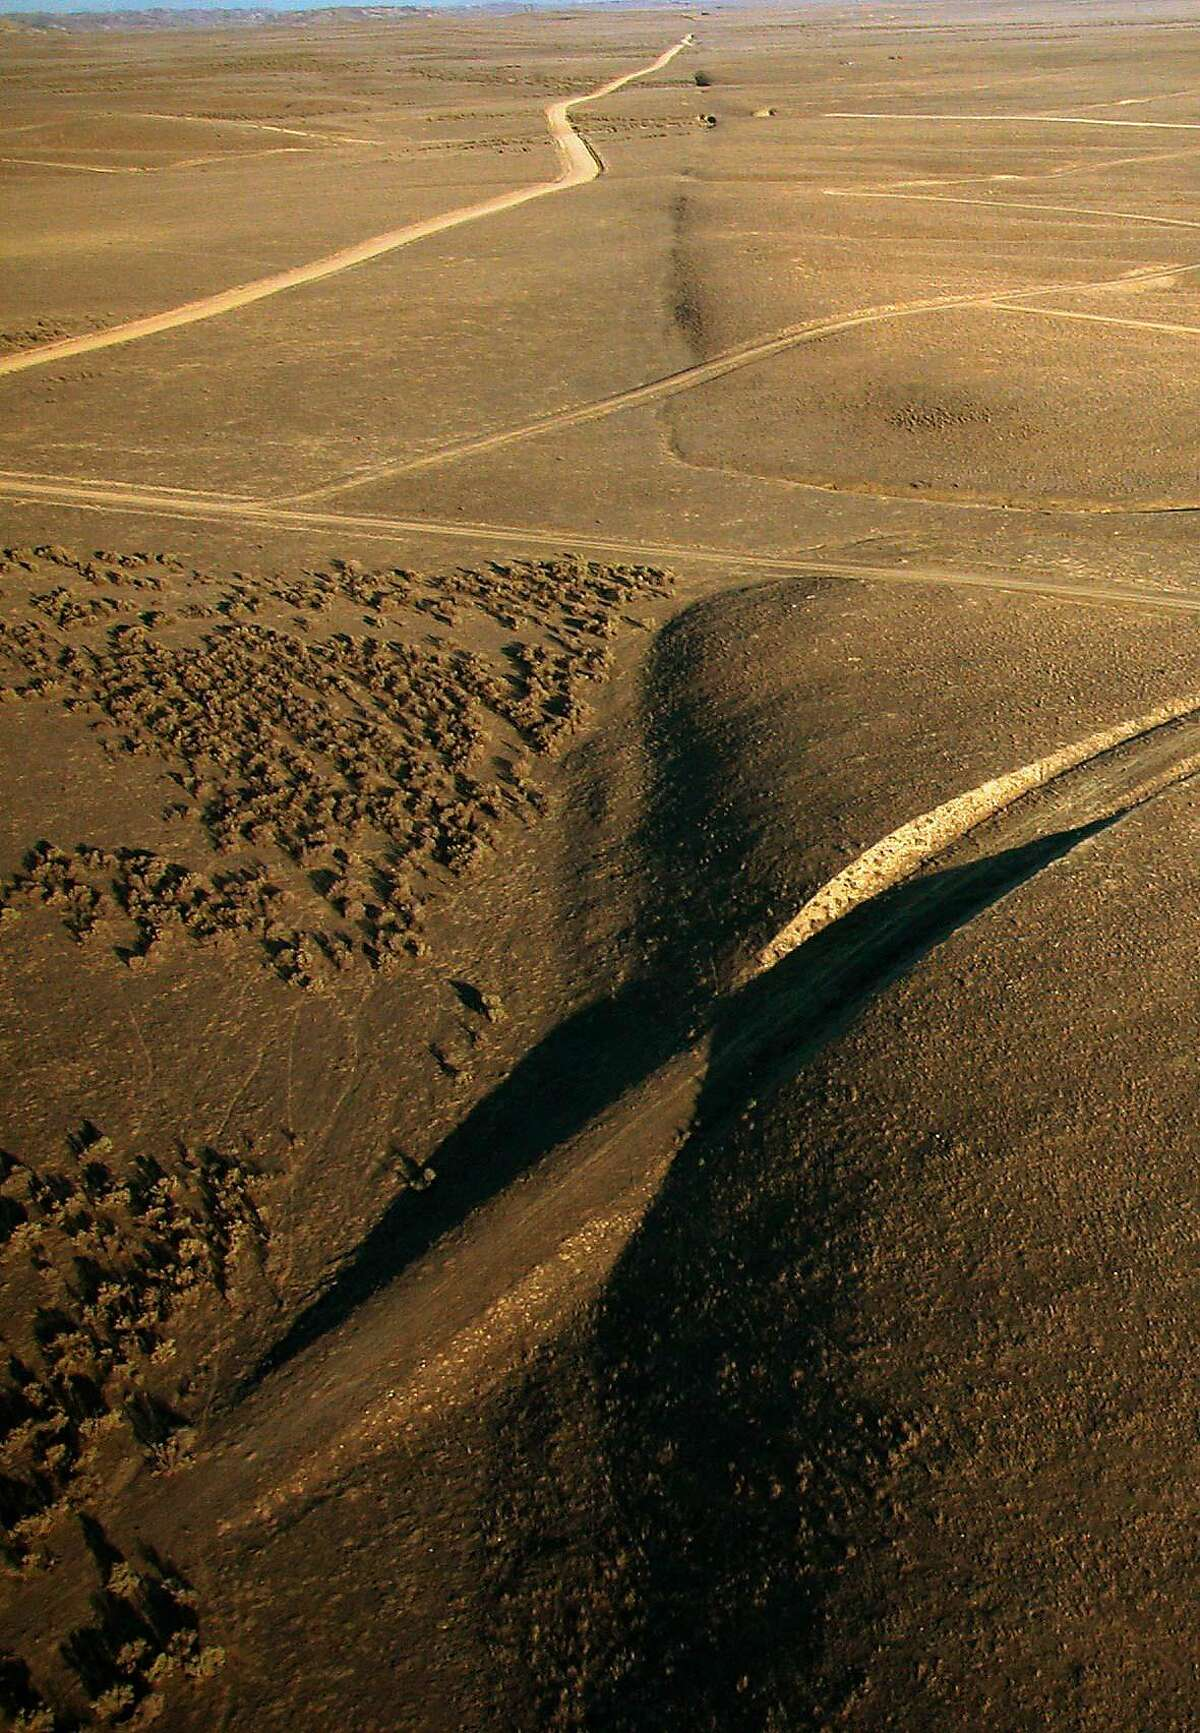 This recent aerial photo provided by United States Geological Survey, shows a view looking southeast along the surface trace of the San Andreas fault in the Carrizo Plain area of California. Elkhorn Rd. meets the fault near the top of the photo. The magnitute-7.9 Fort Tejon earthquake in 1857 caused a horizontal shift of about 30 feet near this stretch of the fault. The 150th anniversary Fort Tejon earthquake is Tuesday, Jan. 9, 2007, but, it's the California earthquake hardly anyone has heard of _ strong enough to rip 225 miles of the San Andreas Fault and make rivers run backward, but leaving nothing like the cultural scar inflicted by the San Francisco Quake of 1906. (AP Photo/U.S. Geological Survey, Scott Haefner)